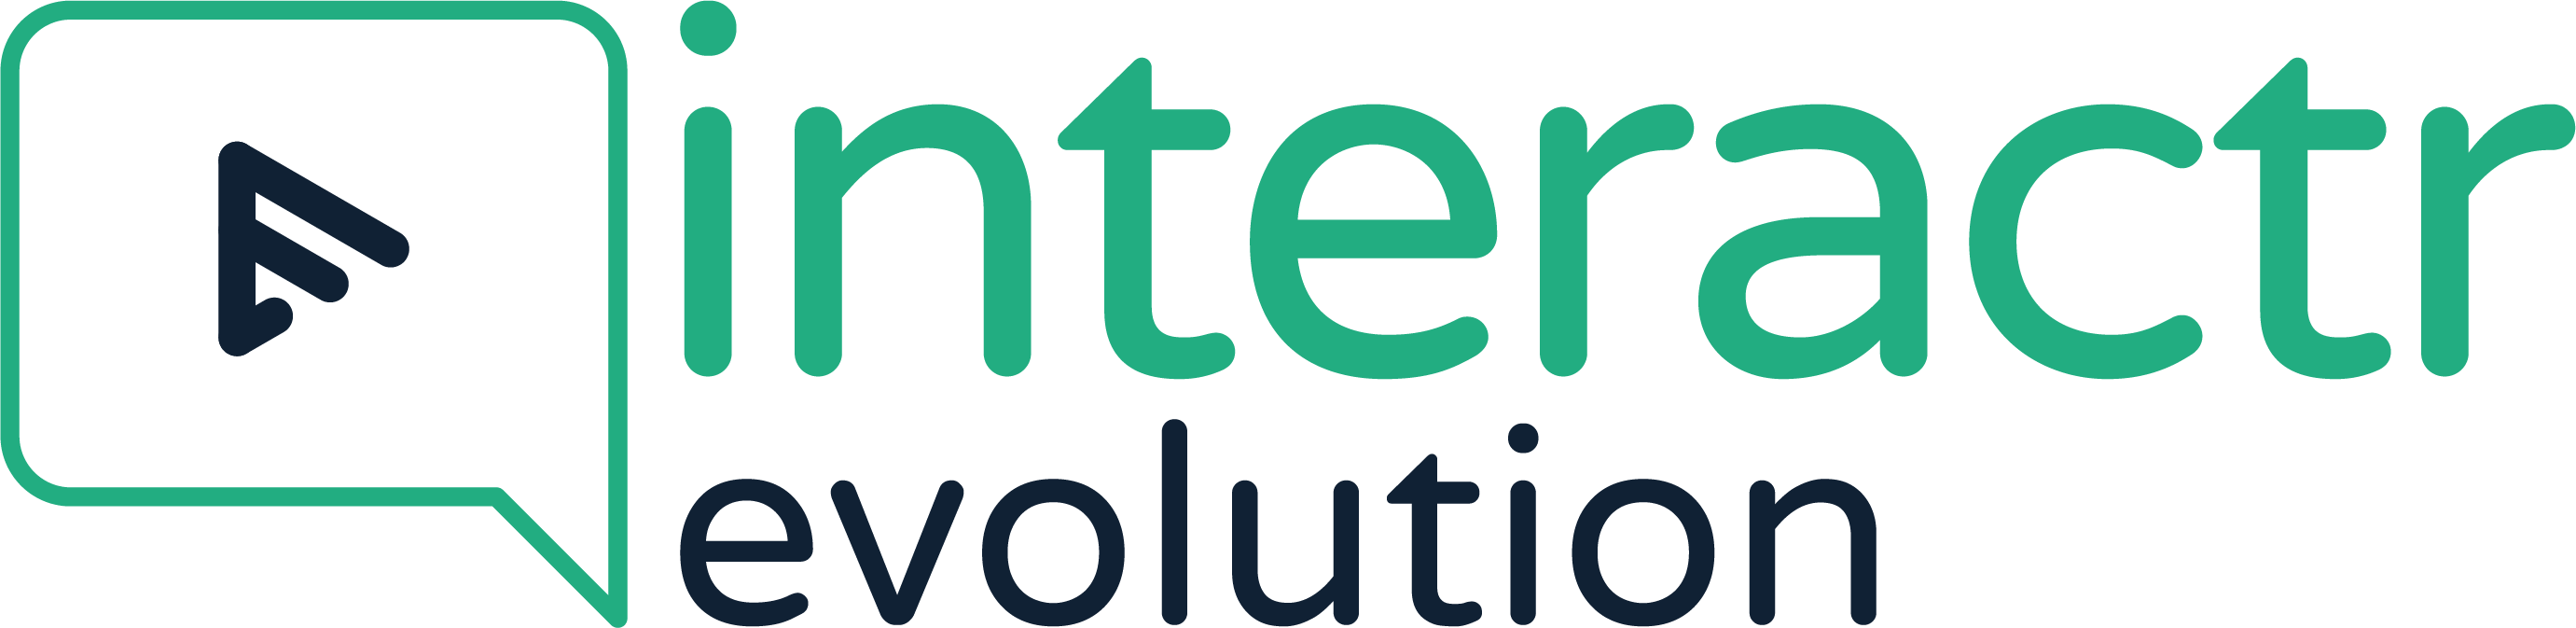 interactr evolution review